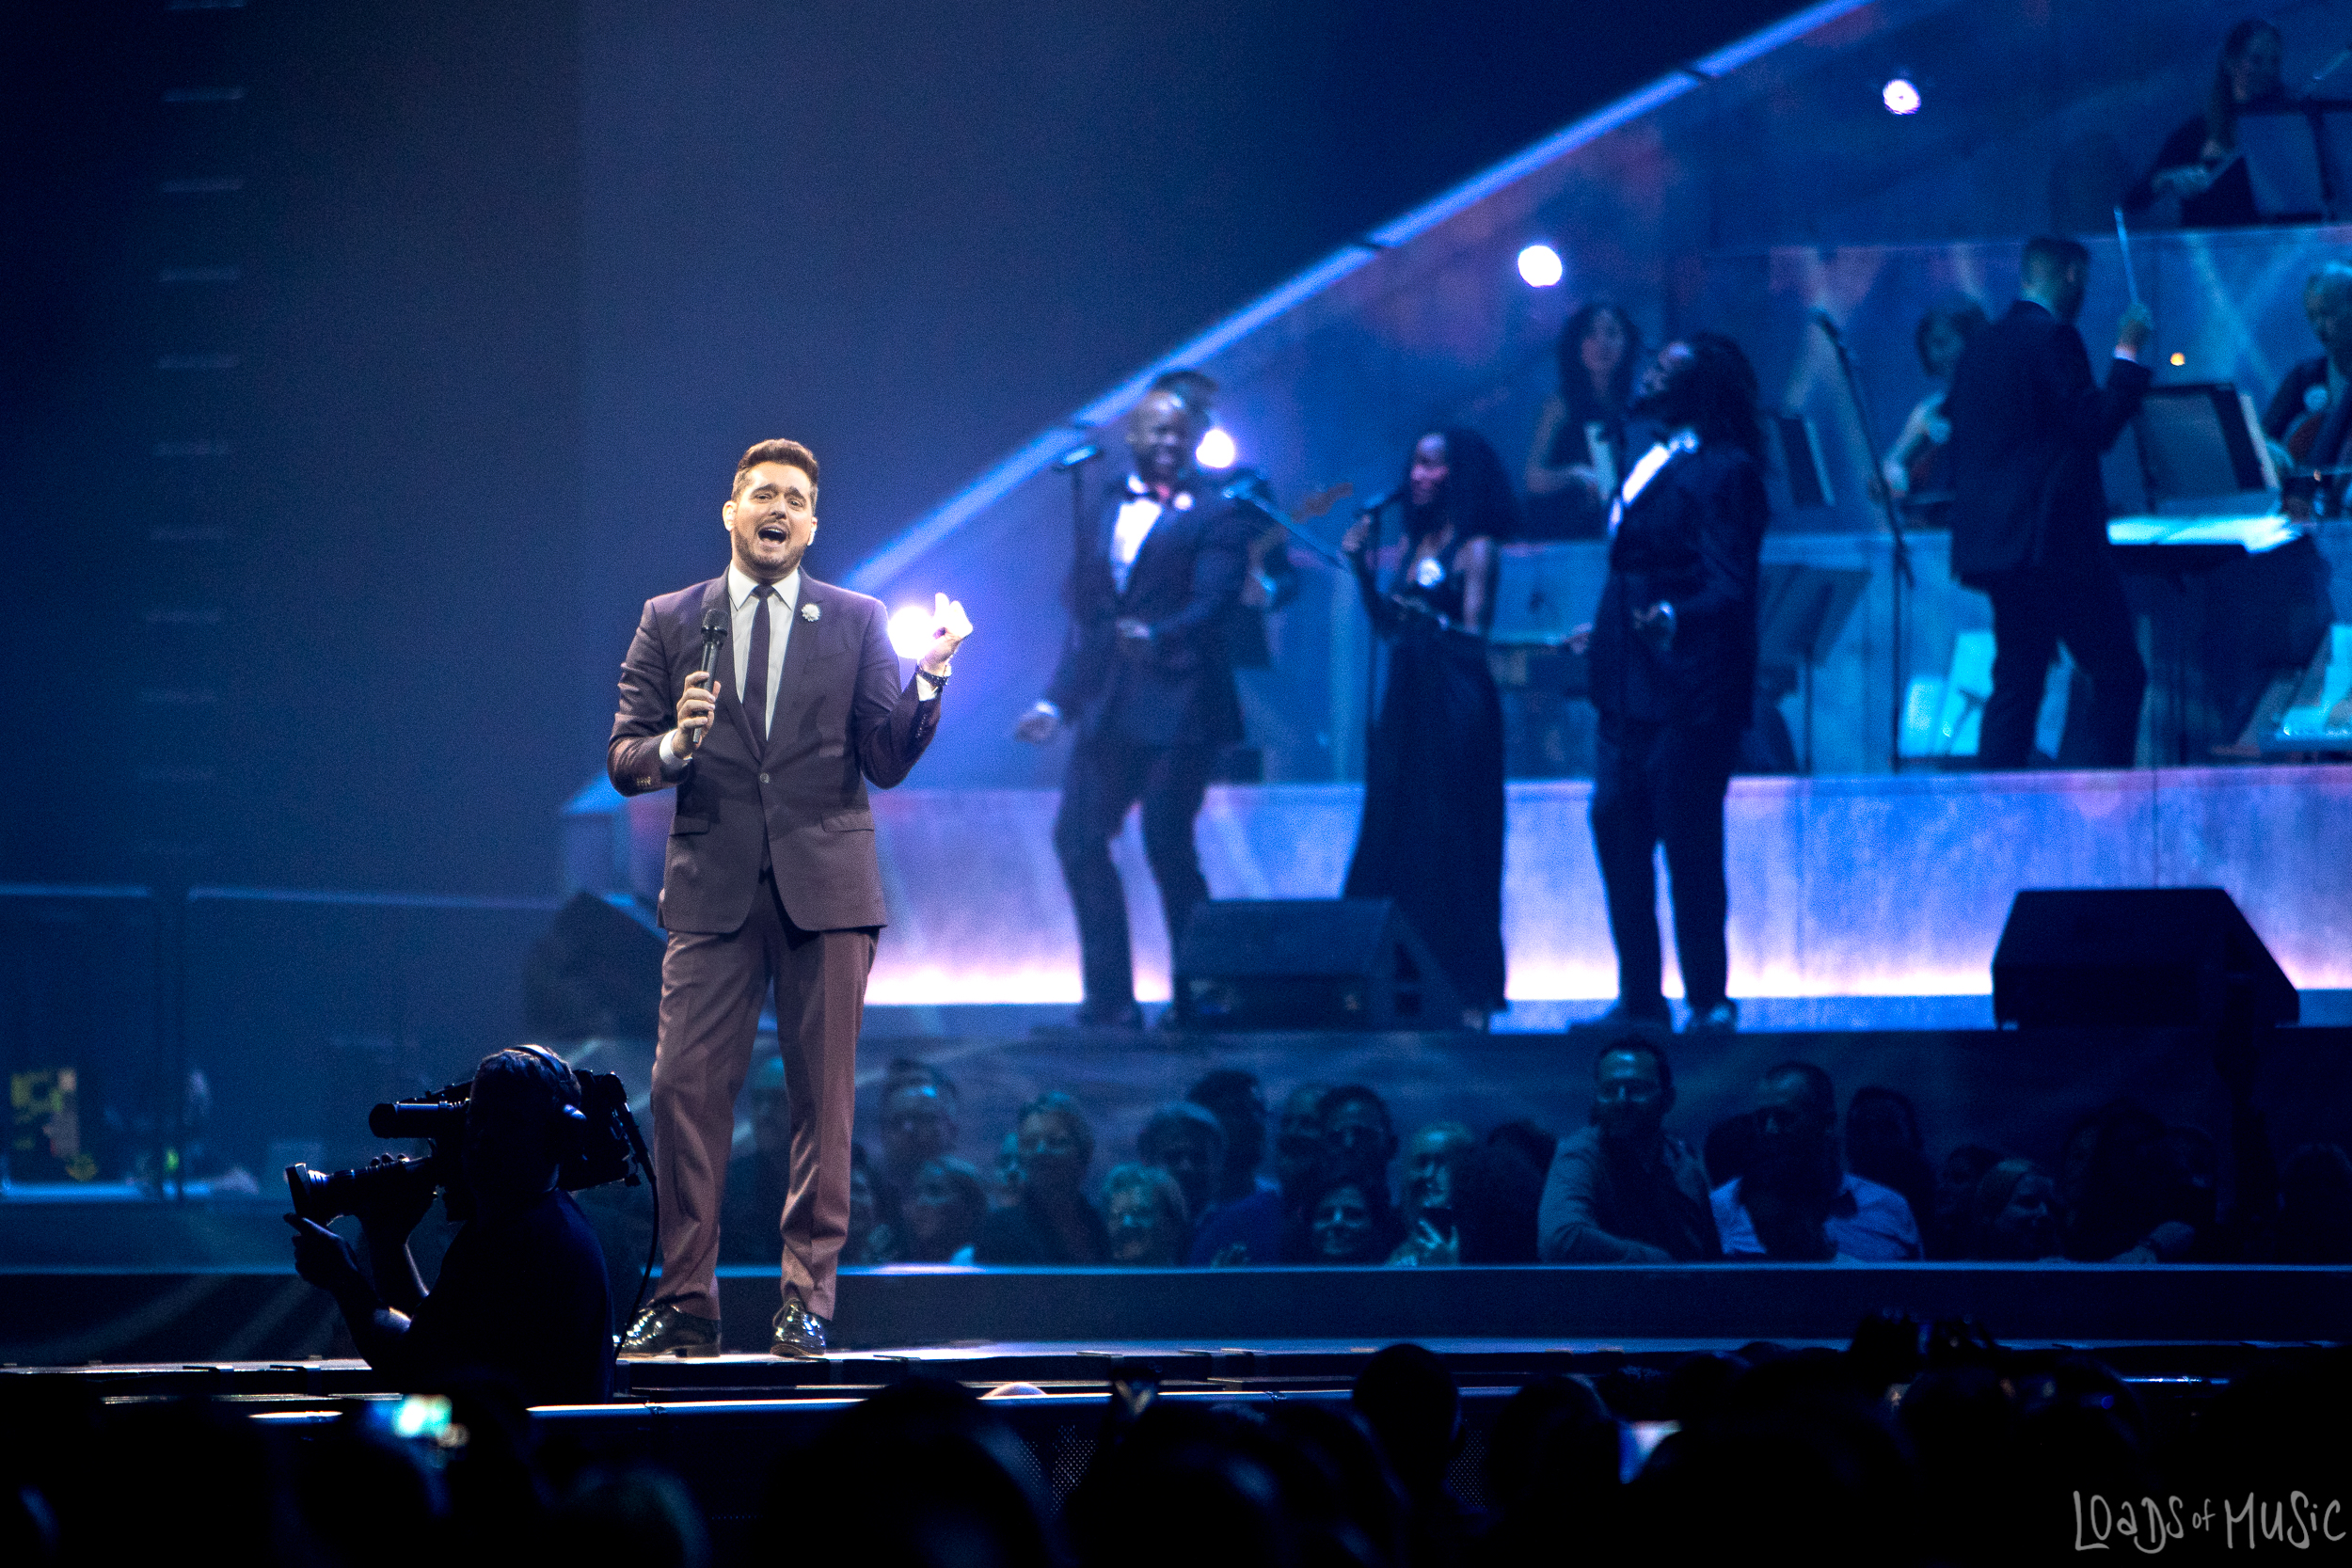 Michael_Buble_Hallenstadion_MB_1